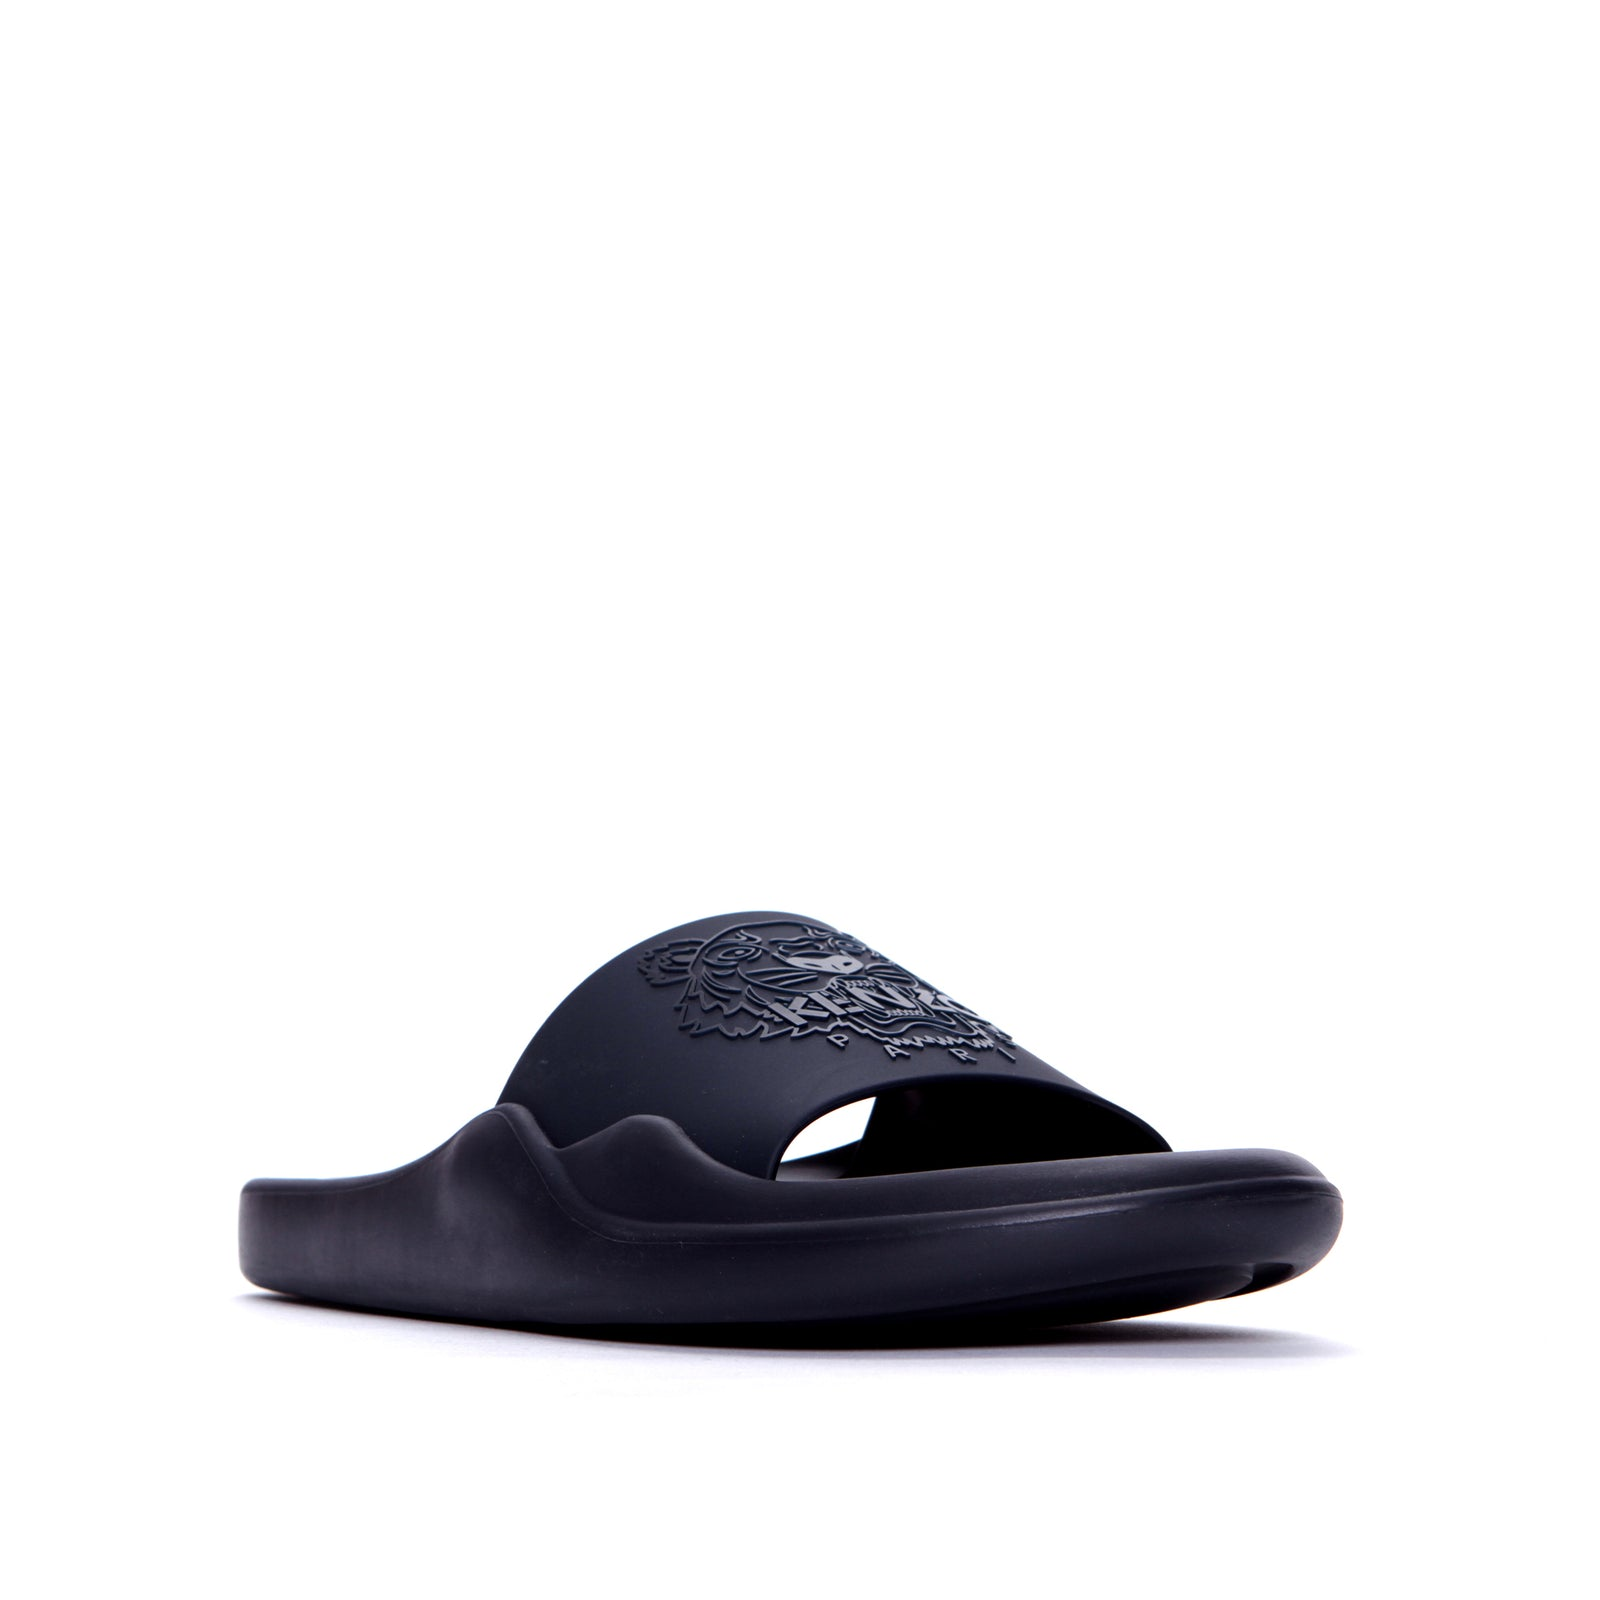 Kenzo Paris FW20 Pool Mule Tiger Head Men's Slides Navy